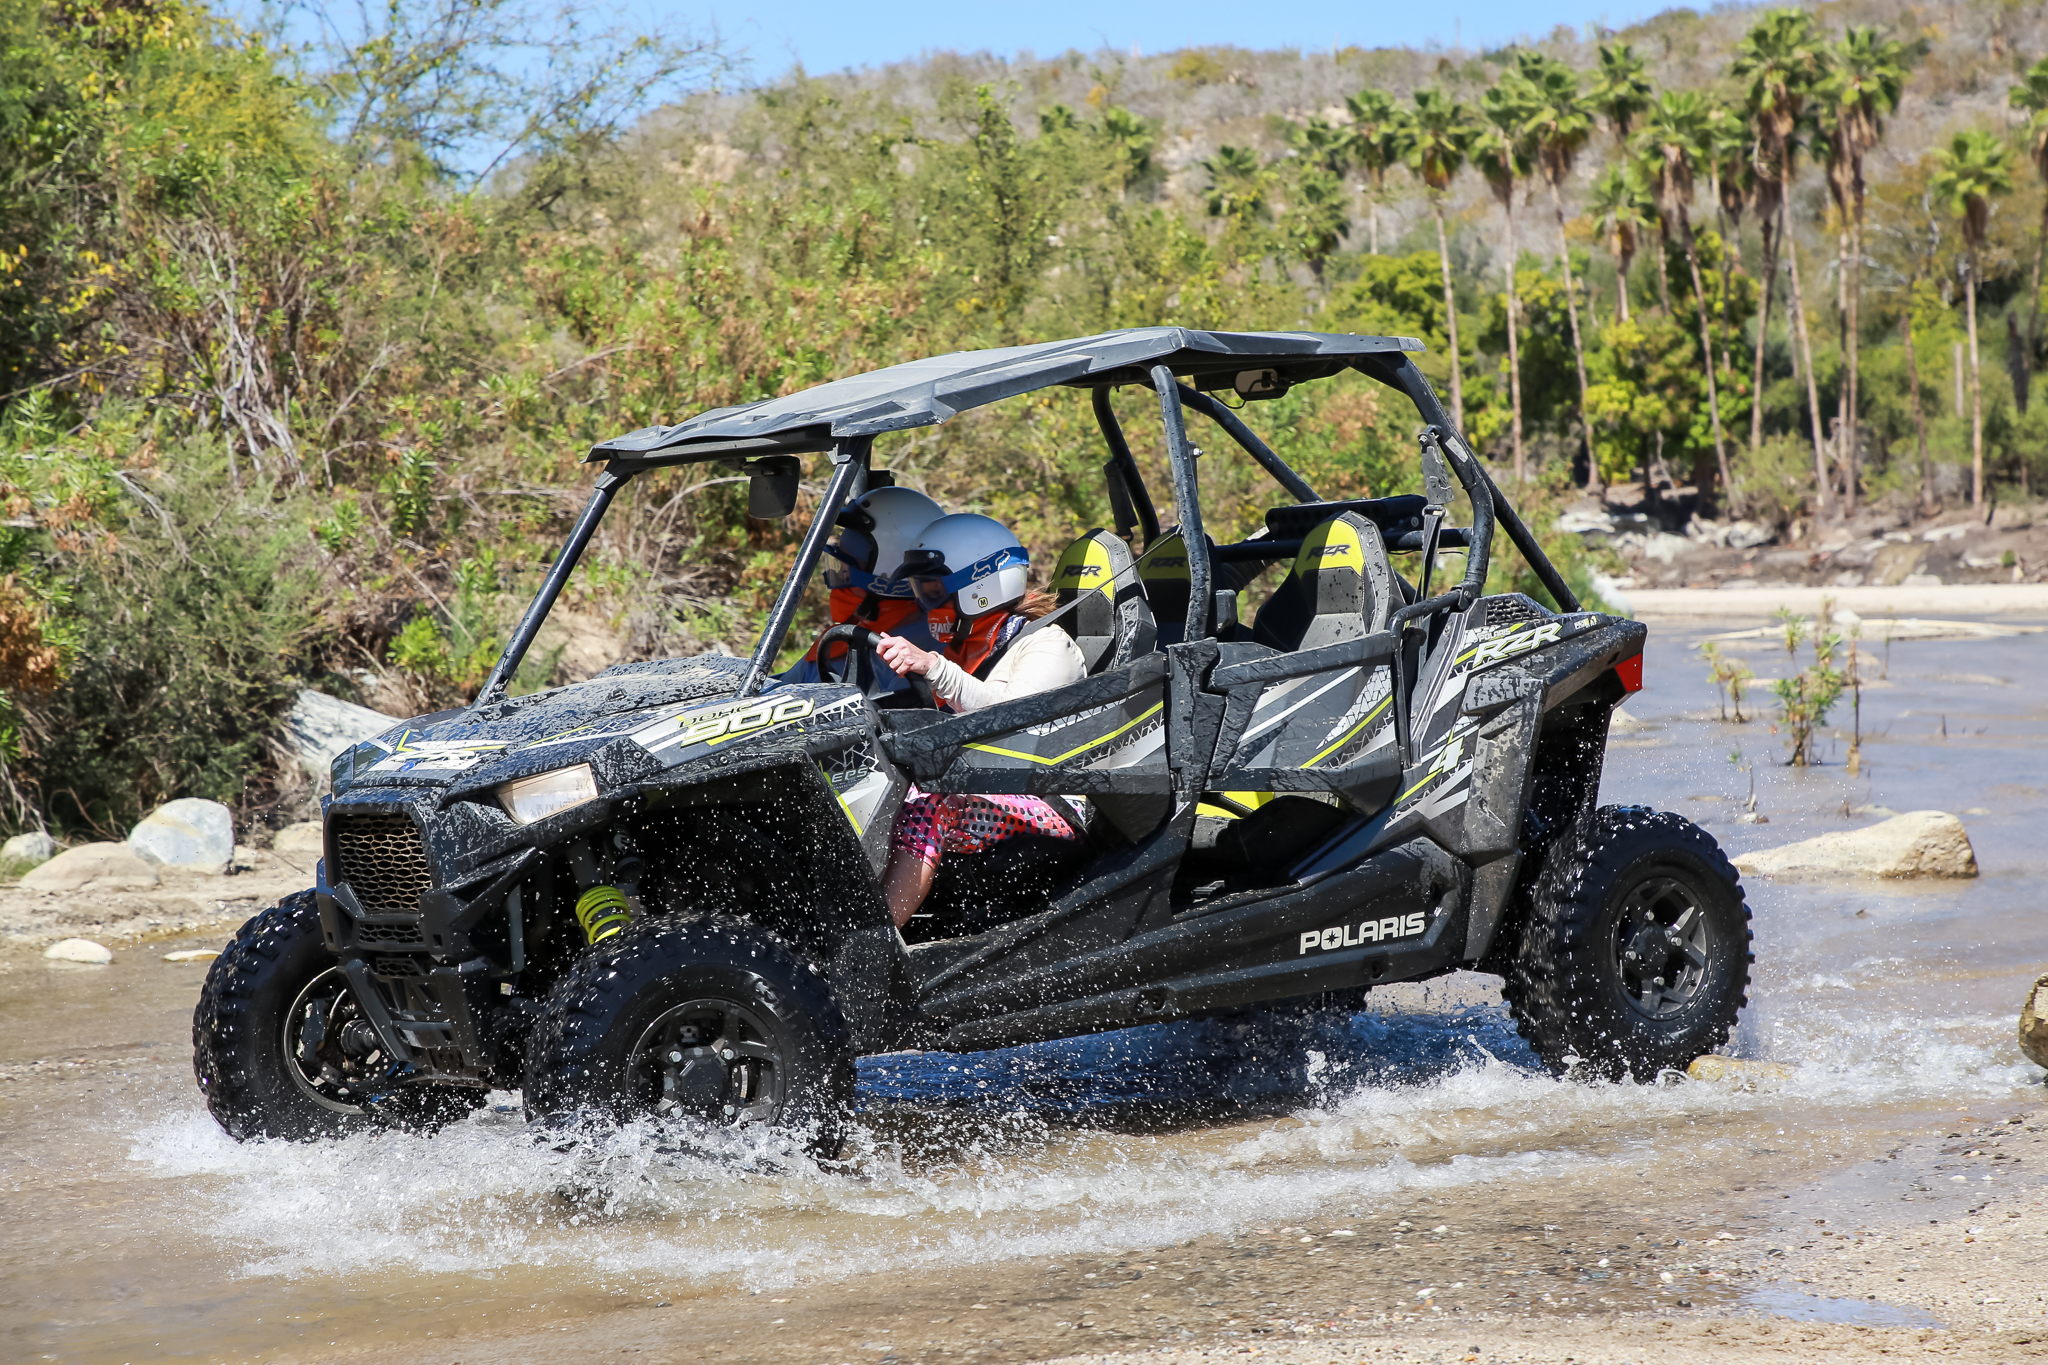 - When the group was talking about going on a Razor for an afternoon with Cabo Adventures, I was like YES! We have to do that!!!I didn't know what a Razor looks like but it sounded like driving crazy fast and dirt and I am all about that. The all-terrain ATV is made by Minnesota-based Polaris.